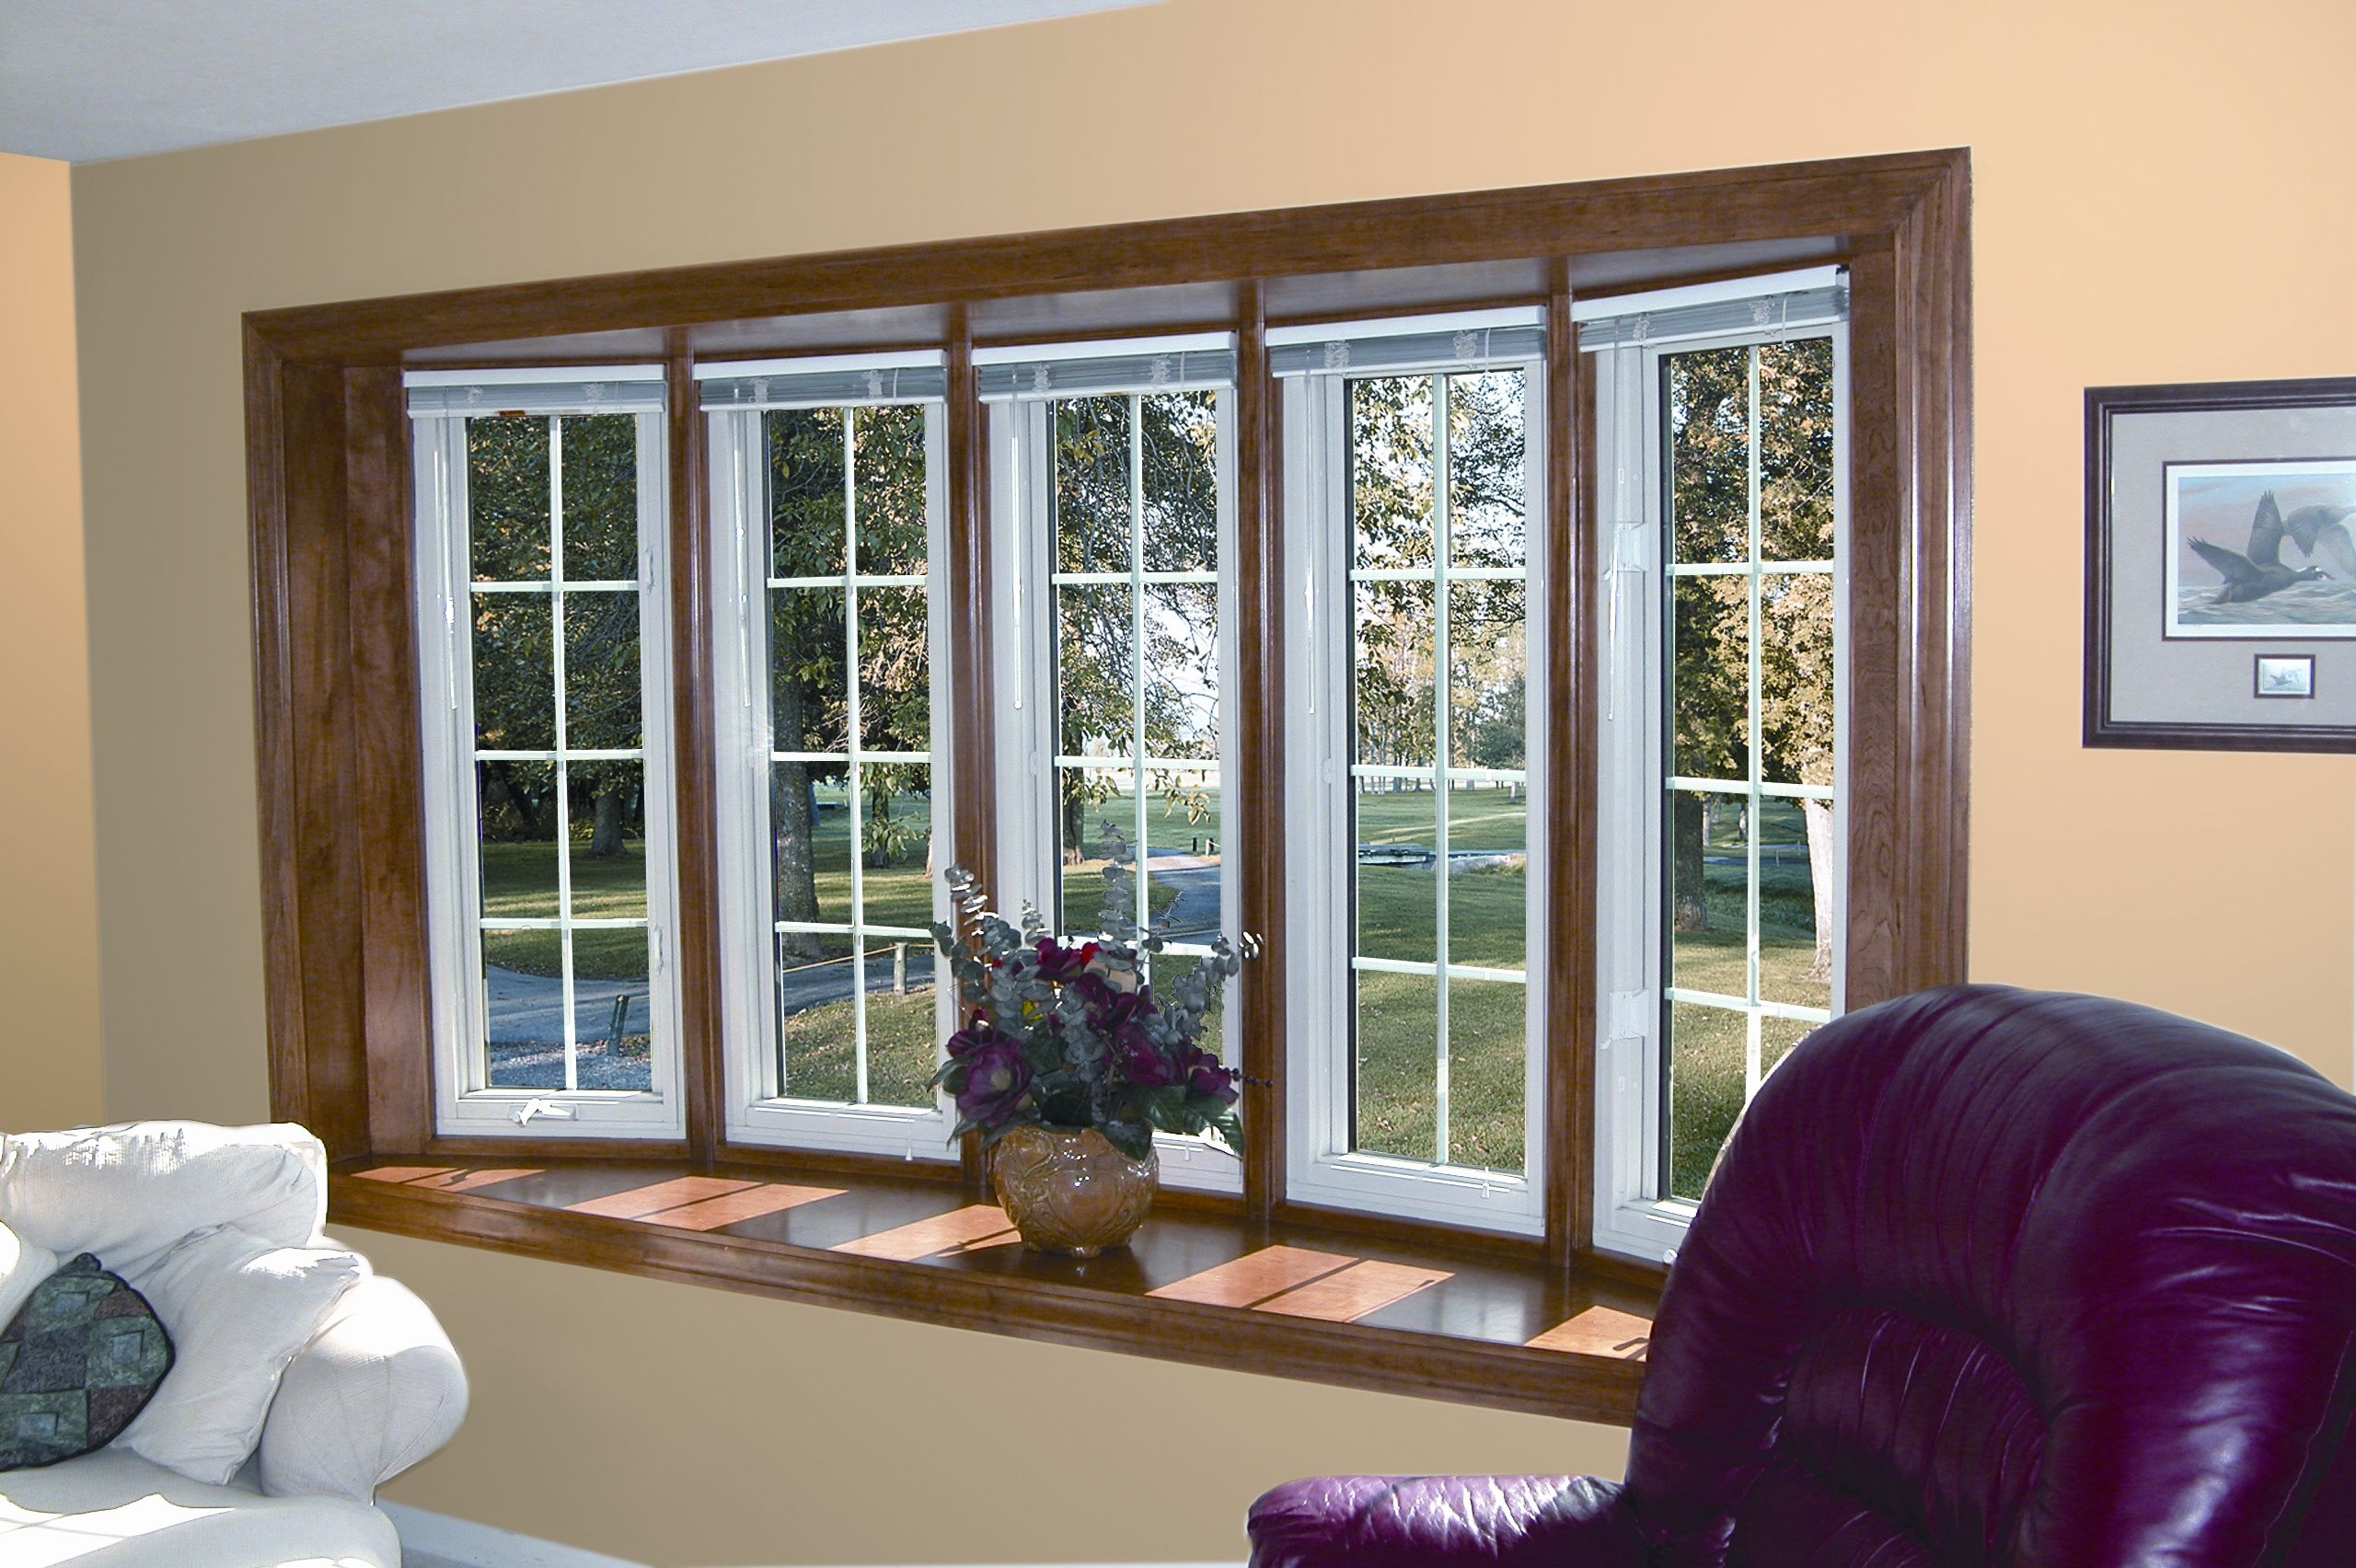 Your Home Will Enjoy The Low Maintenance Interior And Exterior While You Enjoy The Expanded Views Window Treatments Living Room Living Room Windows Bow Window